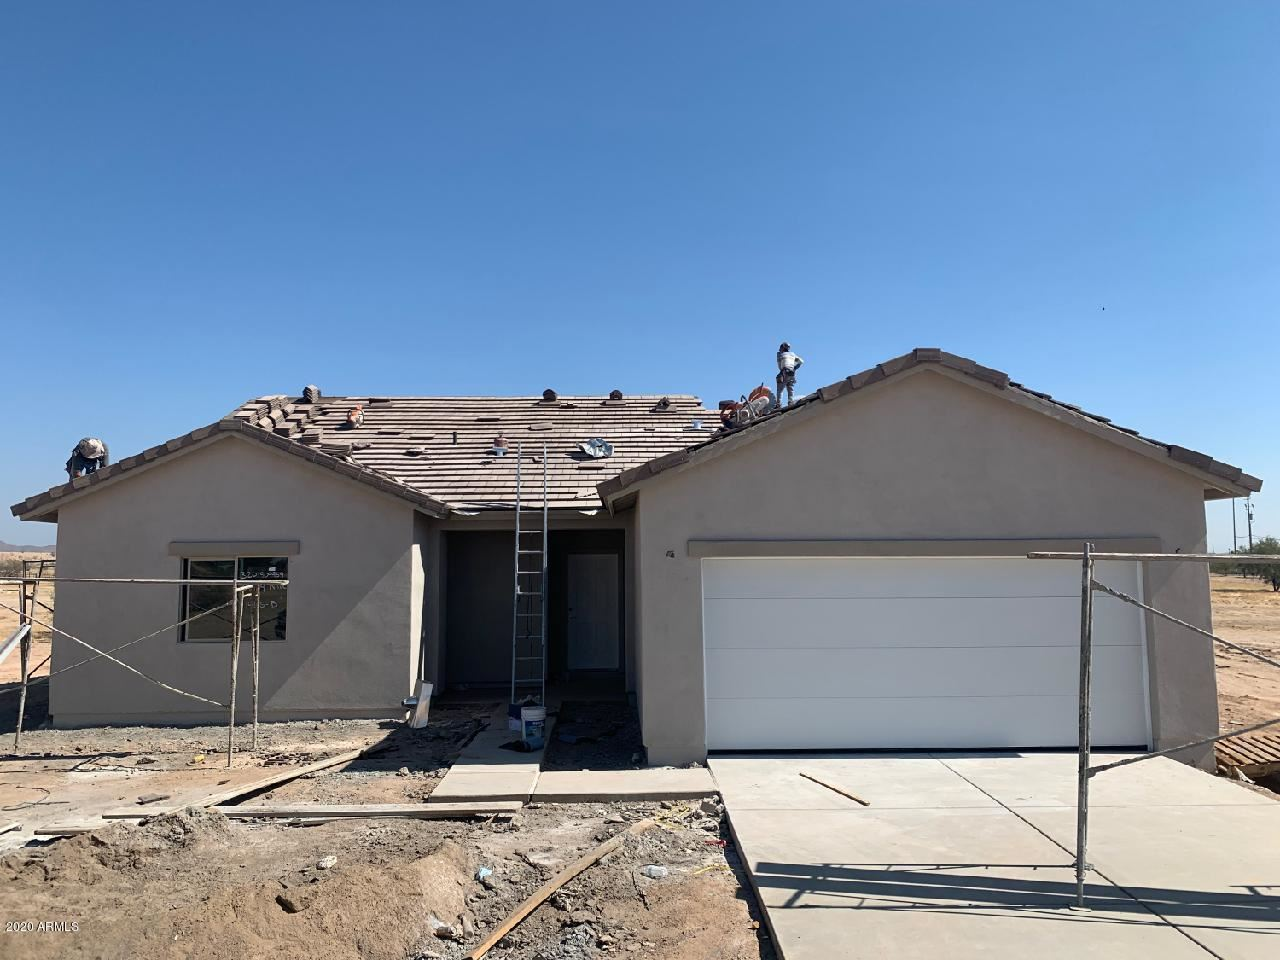 29409 N 182ND Avenue, Surprise, AZ 85387 - MLS#: 6112119